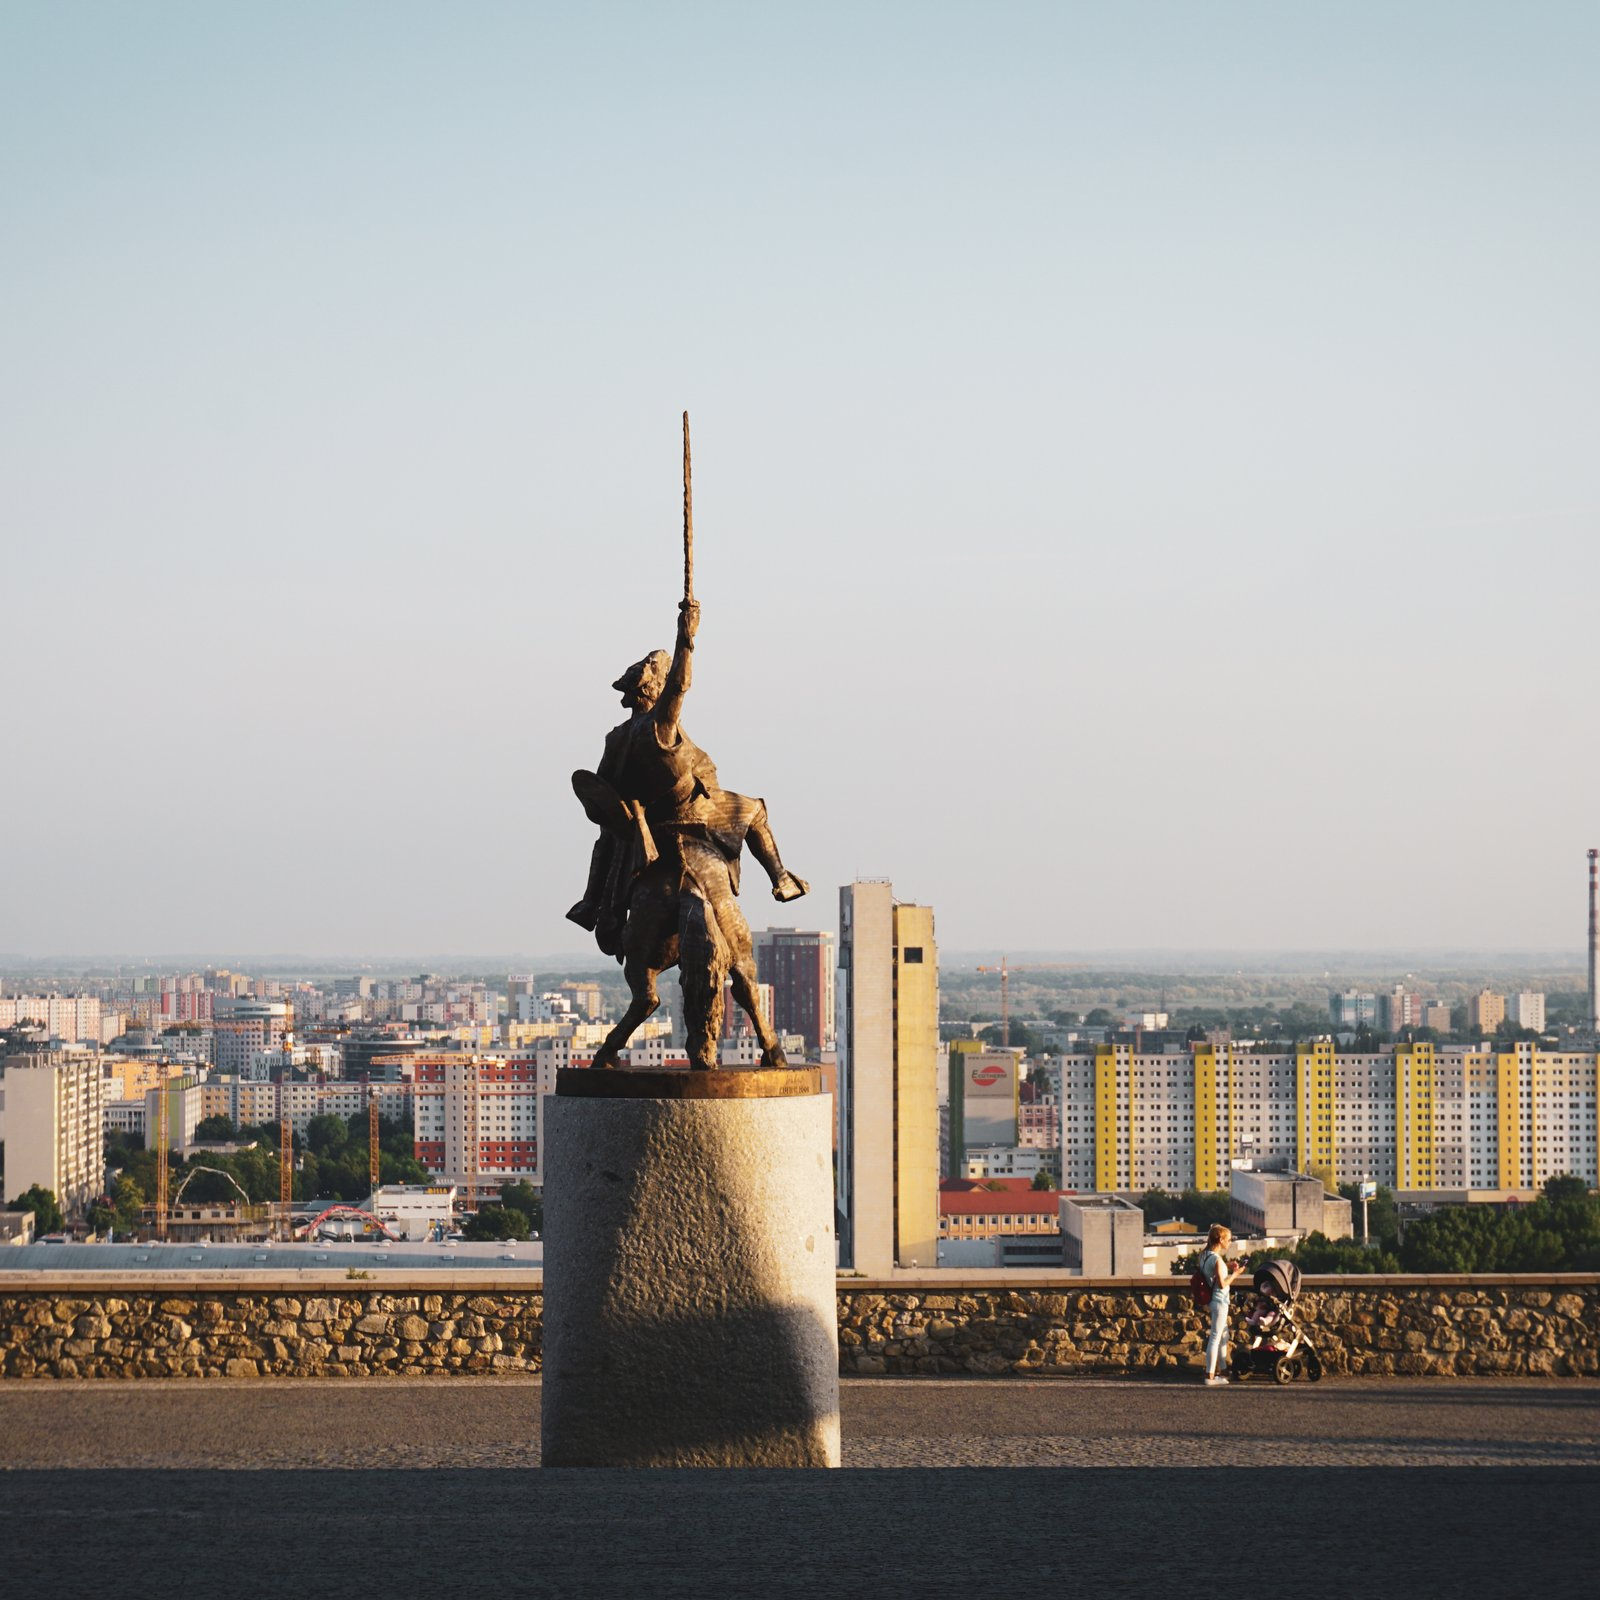 brown statue of man holding sword